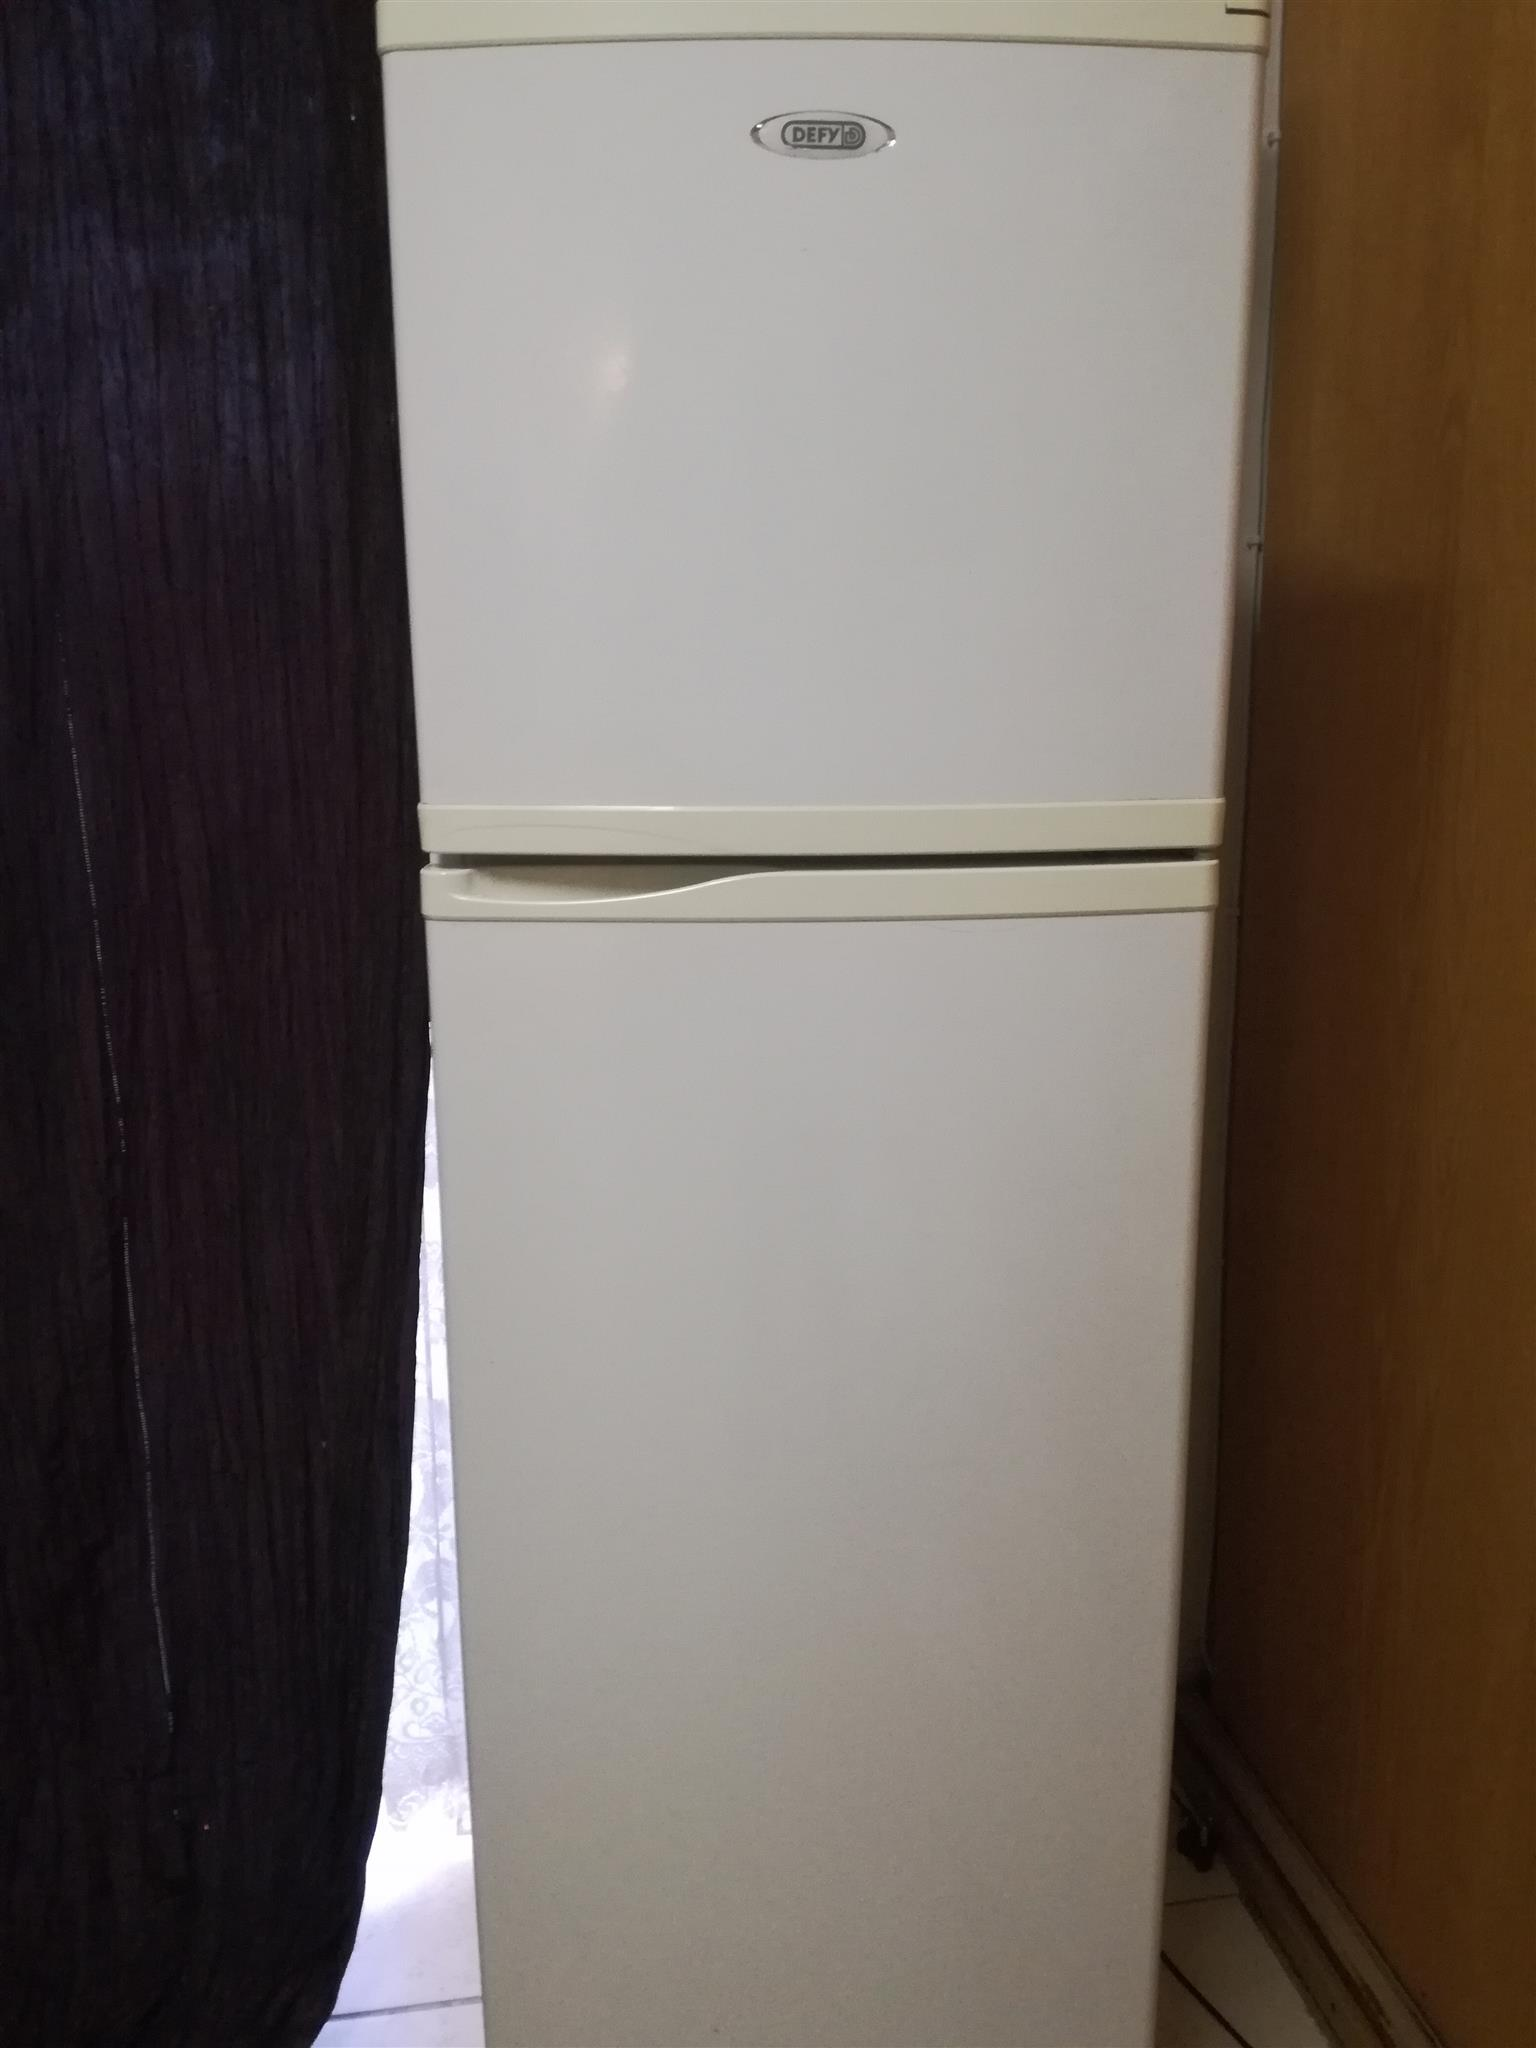 Defy Fridge in perfect working condition